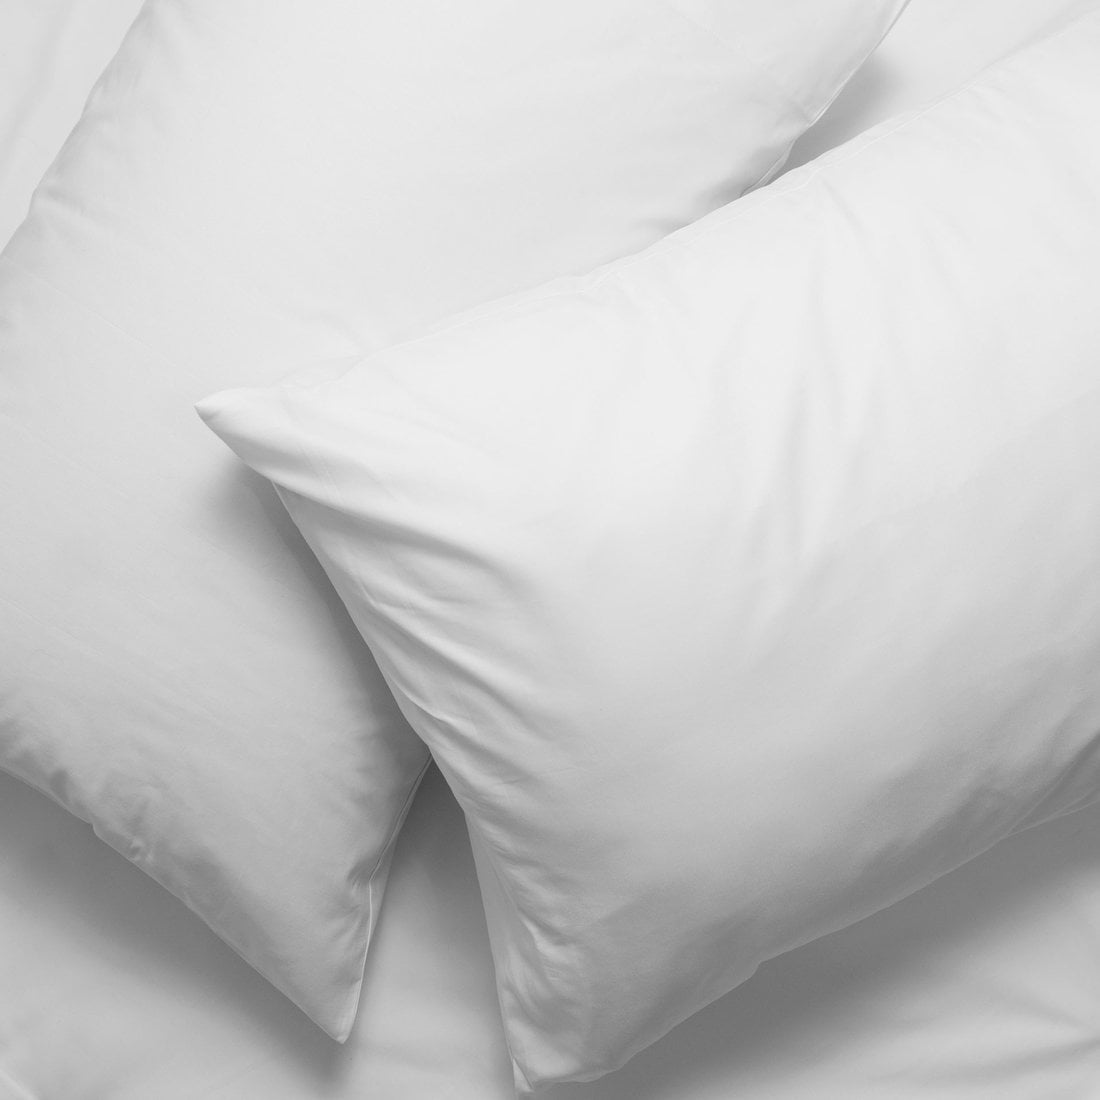 SilverPure™ Anti-Acne Woven Silver Thread Pillowcase